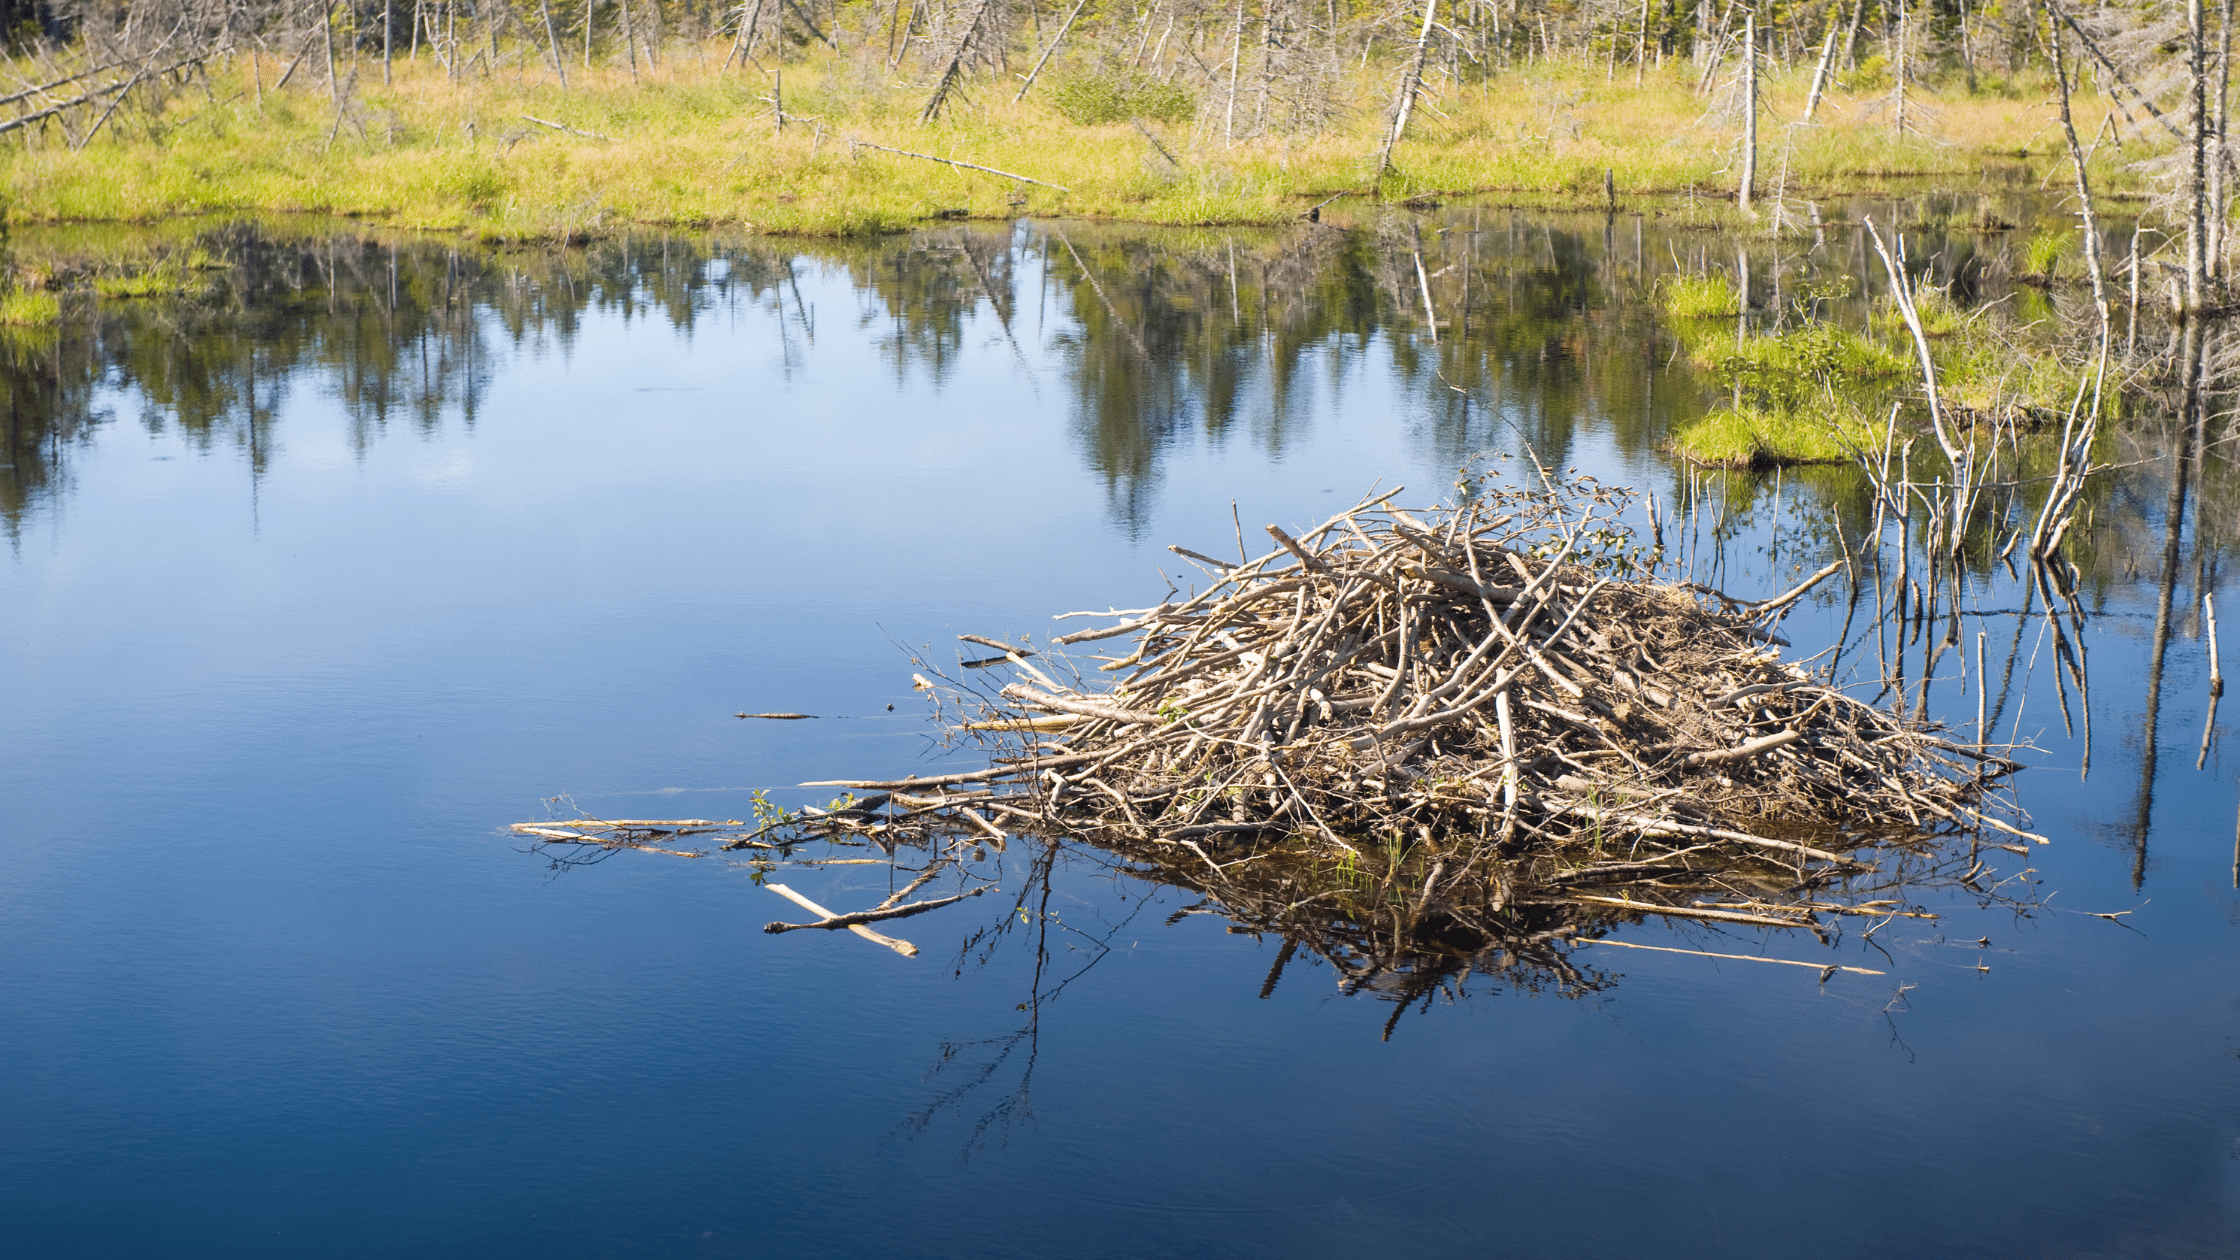 A beaver lodge in the middle of a pond, surrounded by grassland